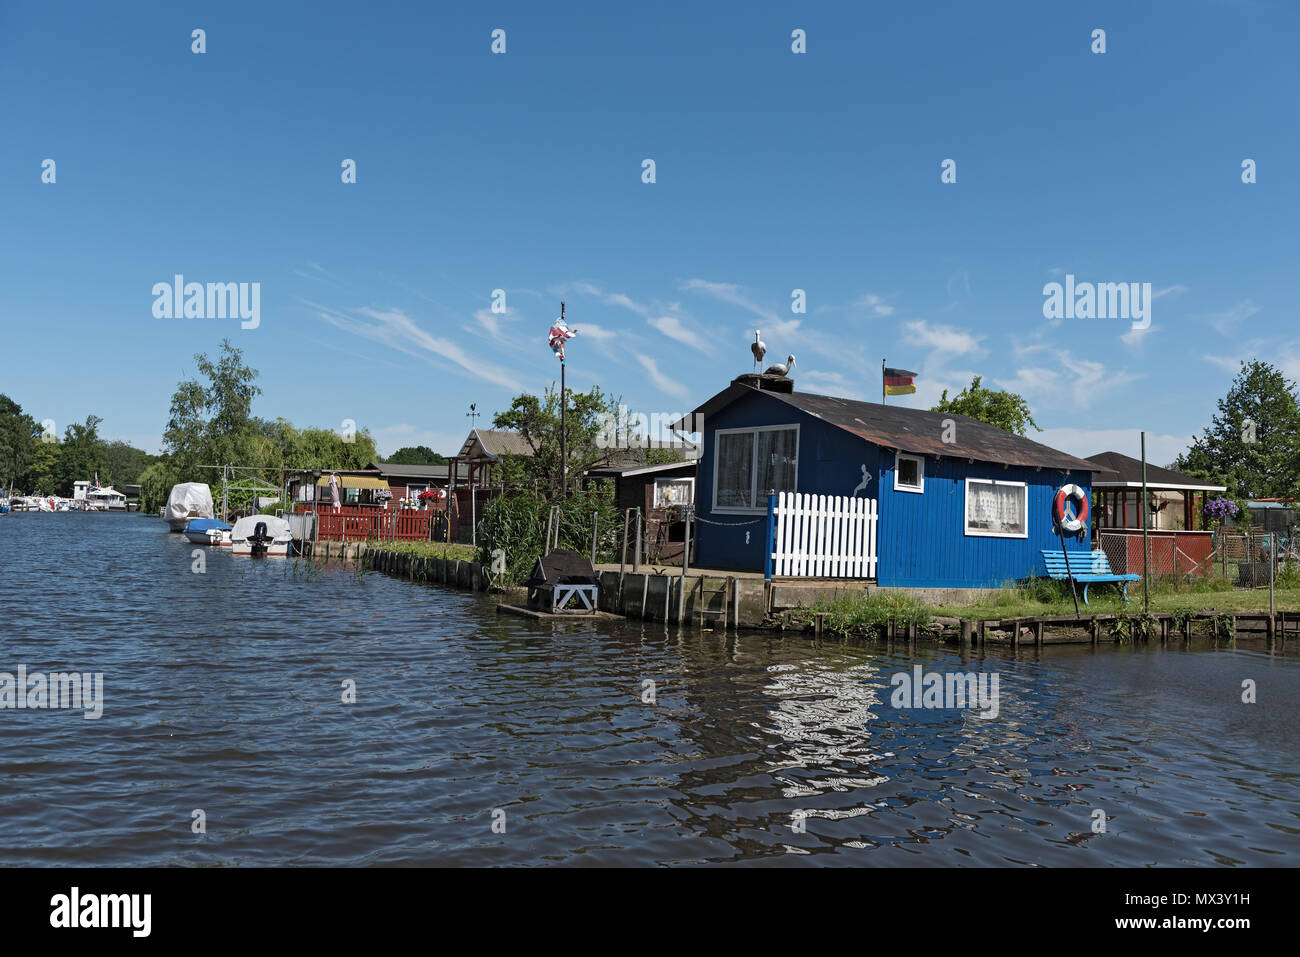 allotment gardens at the old trave, lubeck, germany - Stock Image